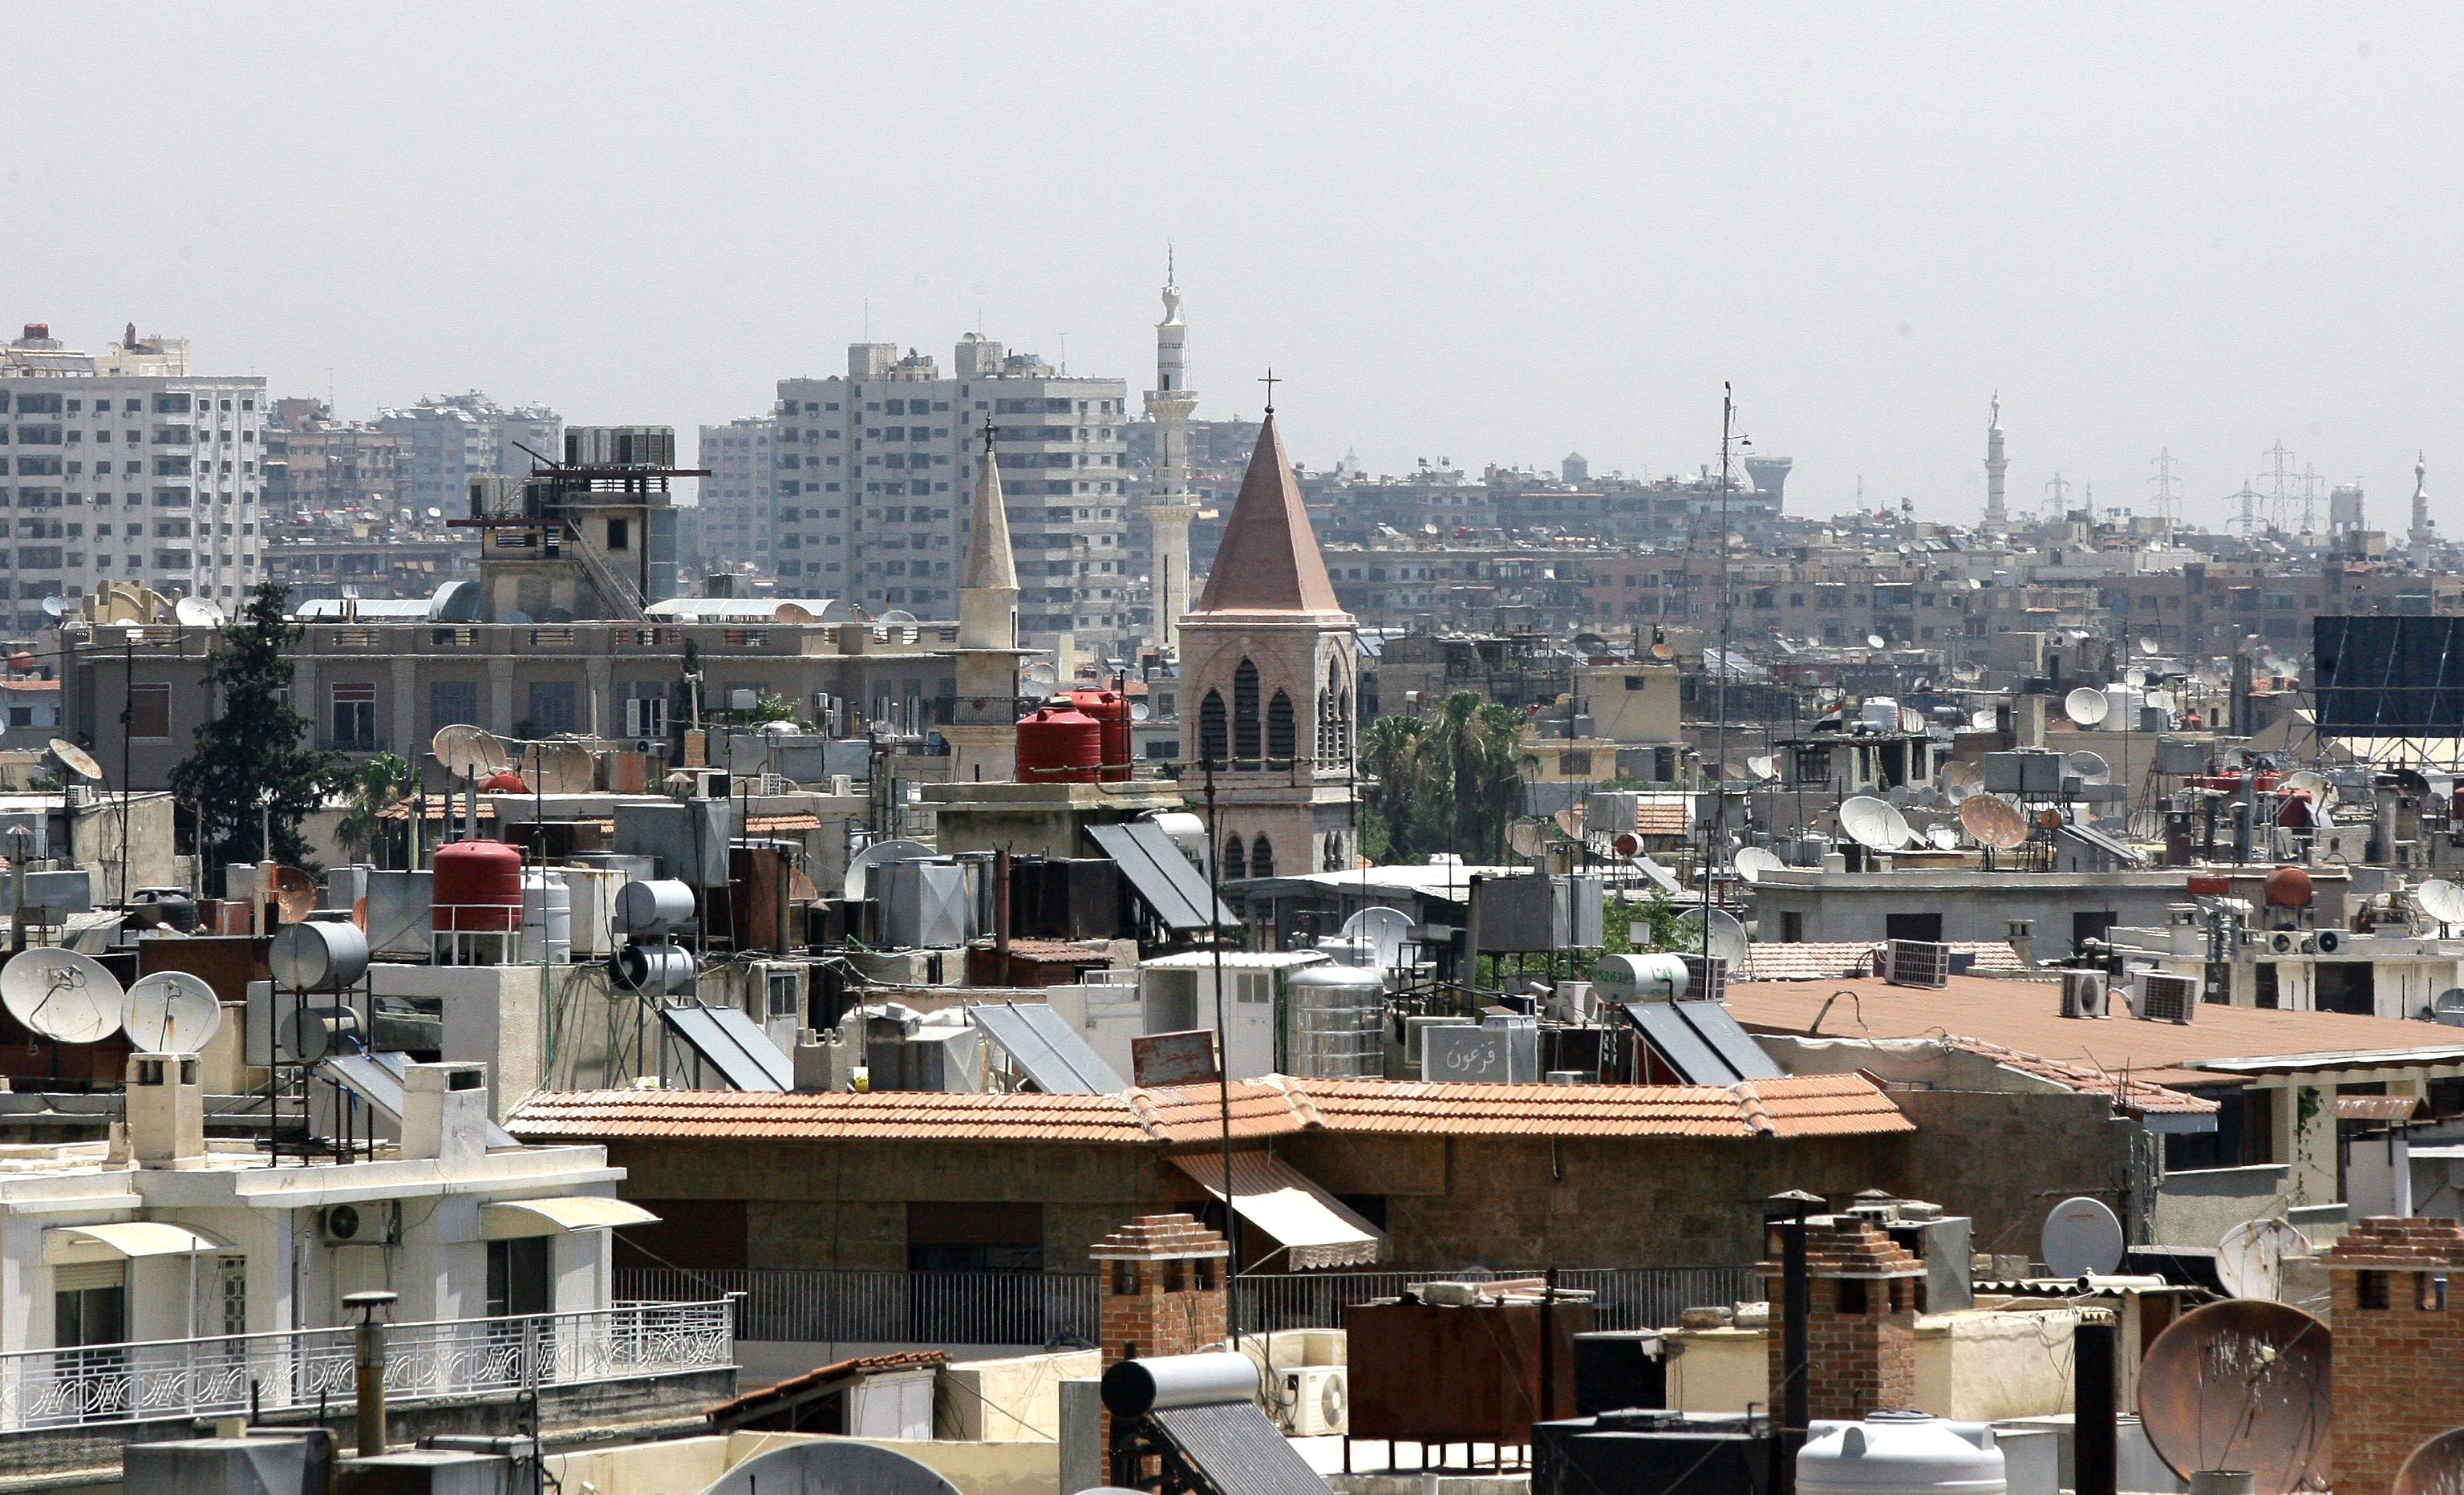 The minarets of mosques and the steeples of churches are seen towering above rooftops  in the Syrian capital, Damascus, on June 26, 2013